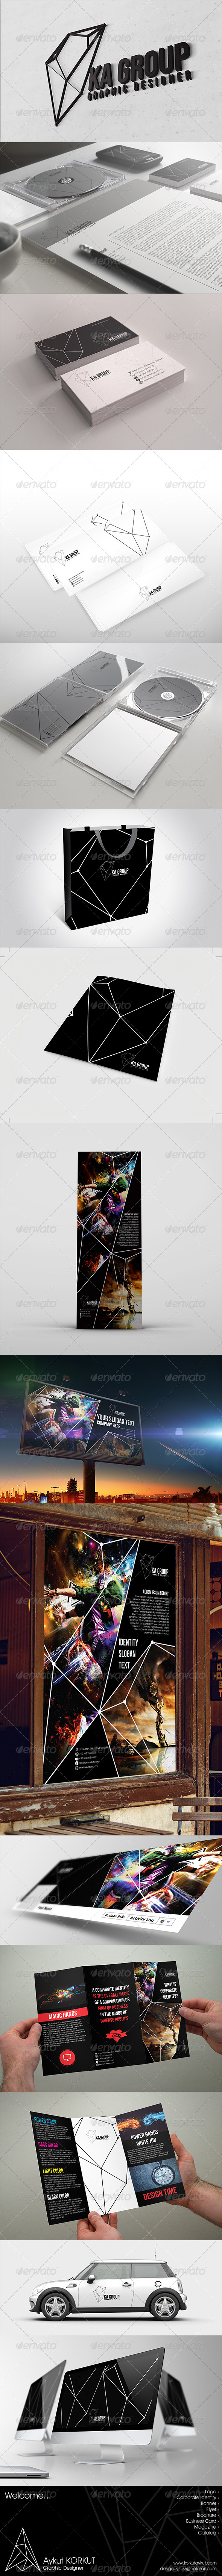 GraphicRiver Ka Group Corporate Identity Package 5741837